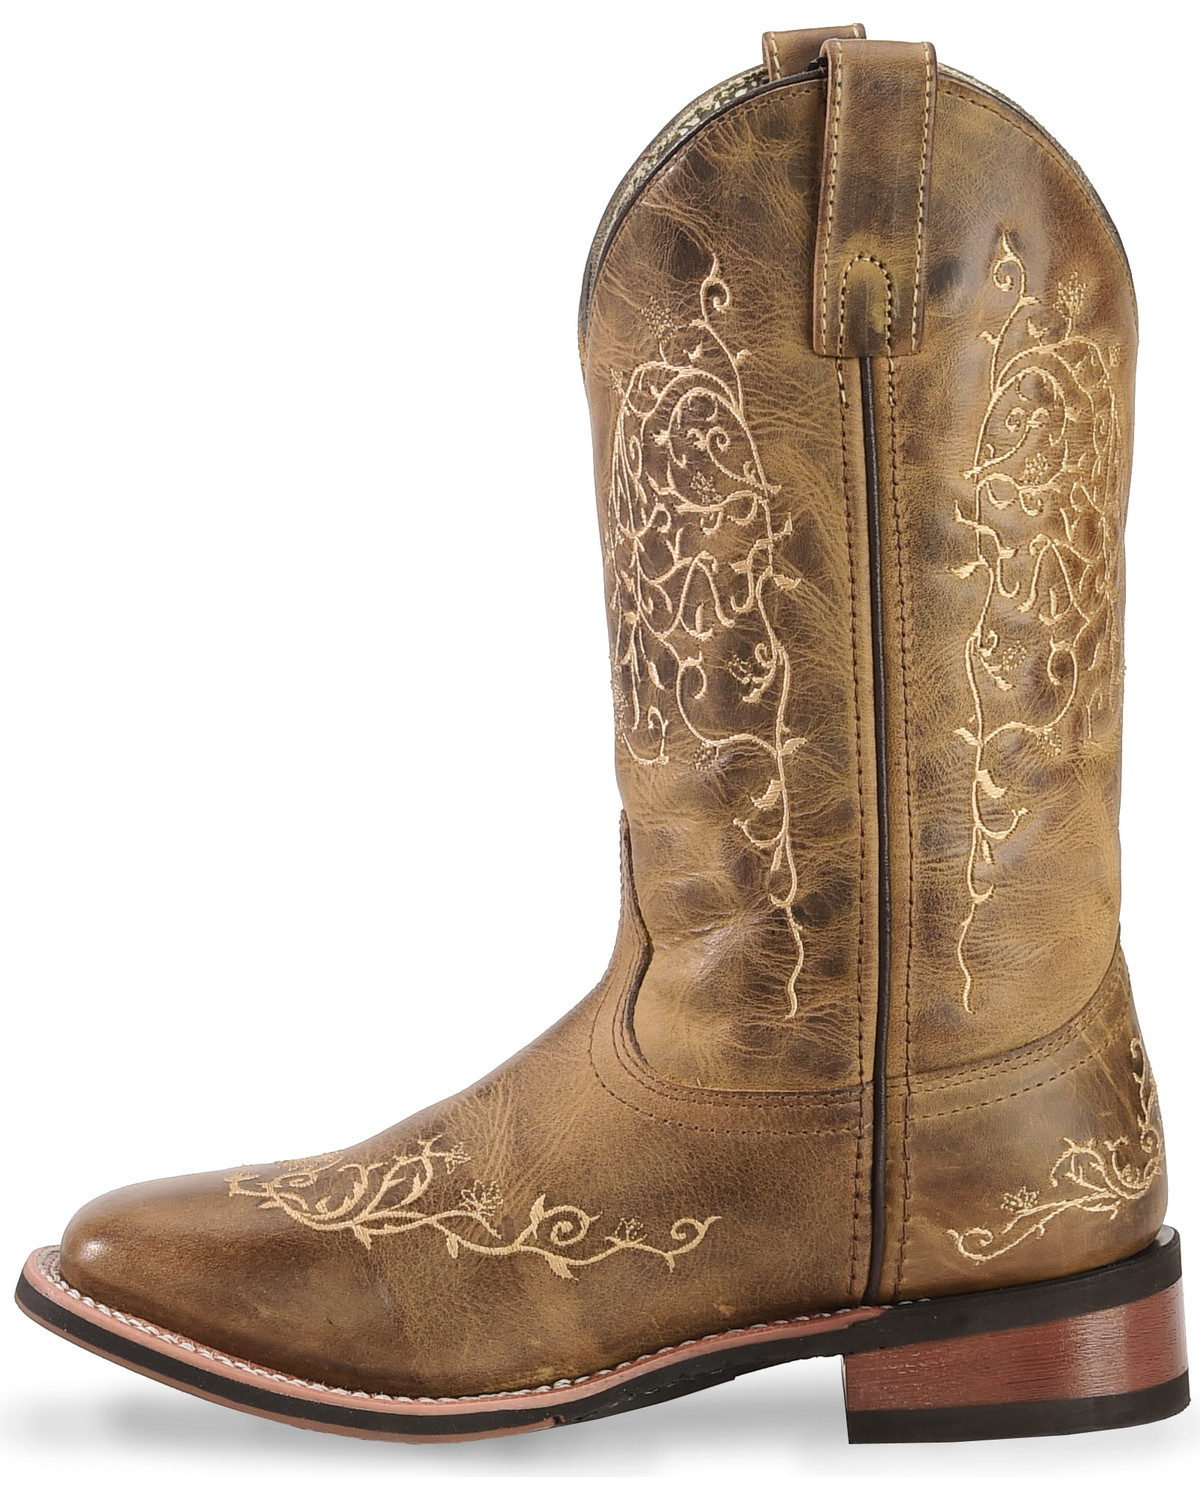 Laredo Women's Cowboy Approved Embroidered Western Boots